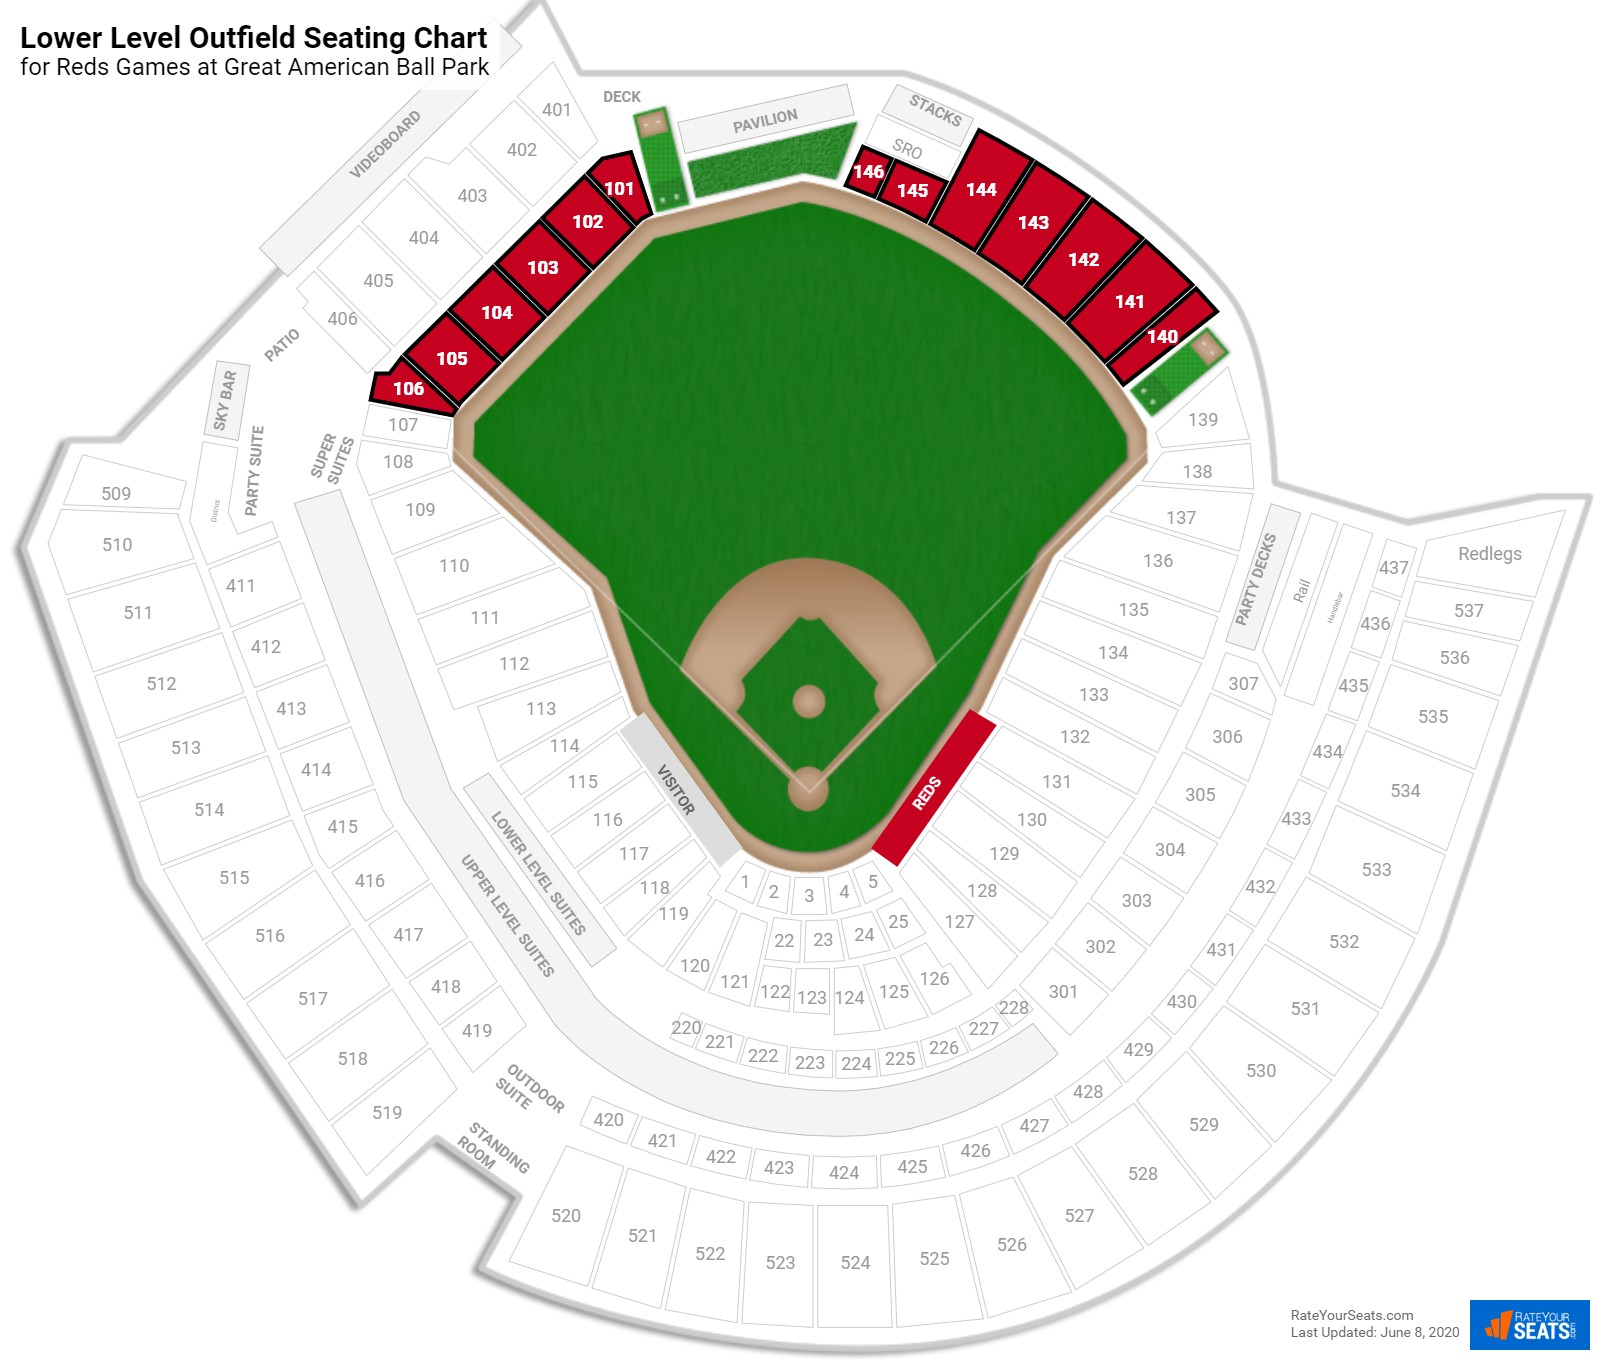 Great American Ball Park Lower Level Outfield seating chart